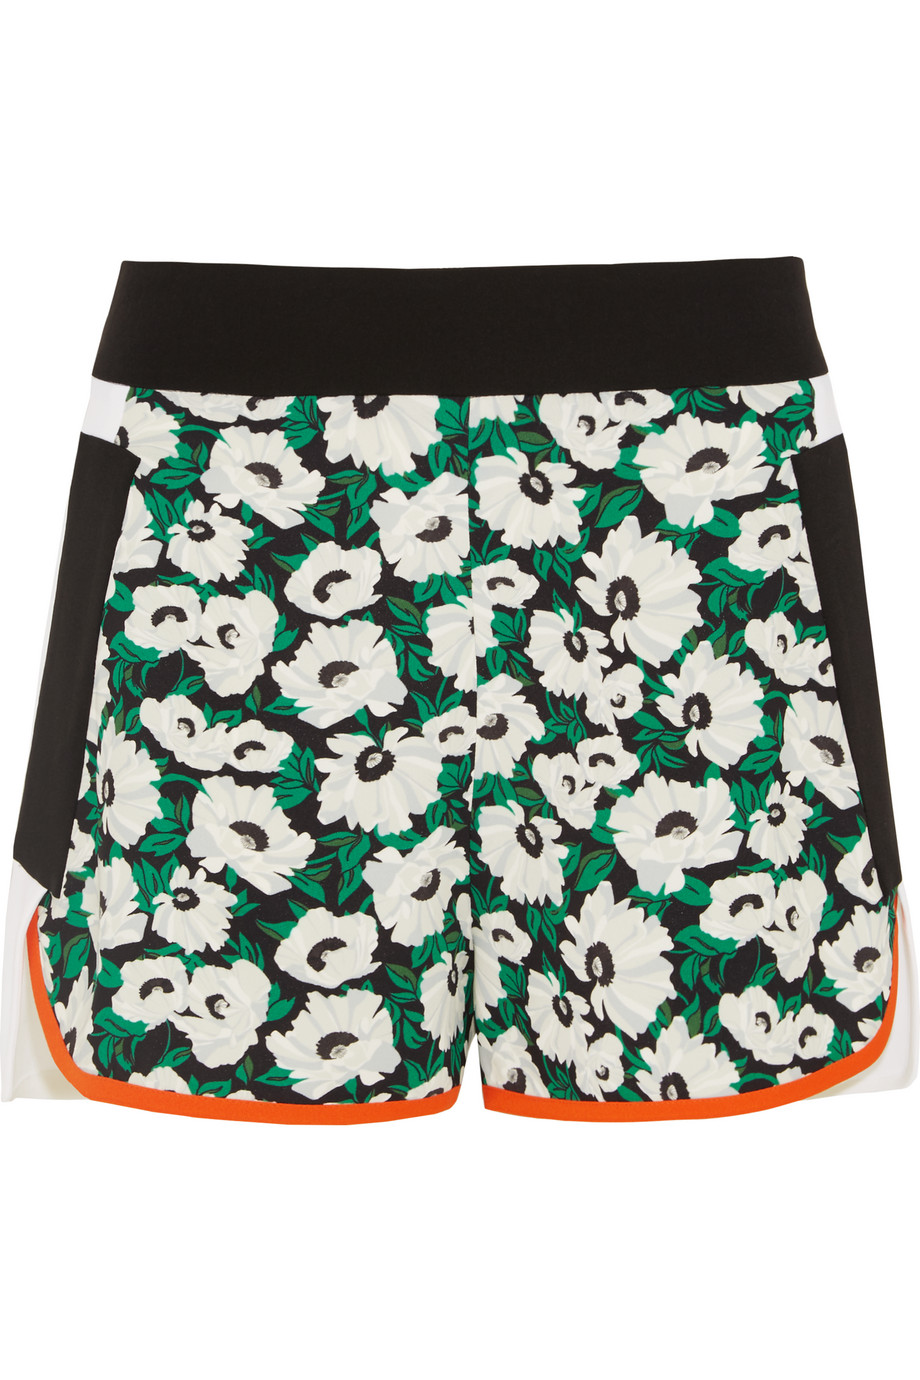 Stella Mccartney Kristele Floral-Print Crepe Shorts, Black/Green, Women's, Size: 36